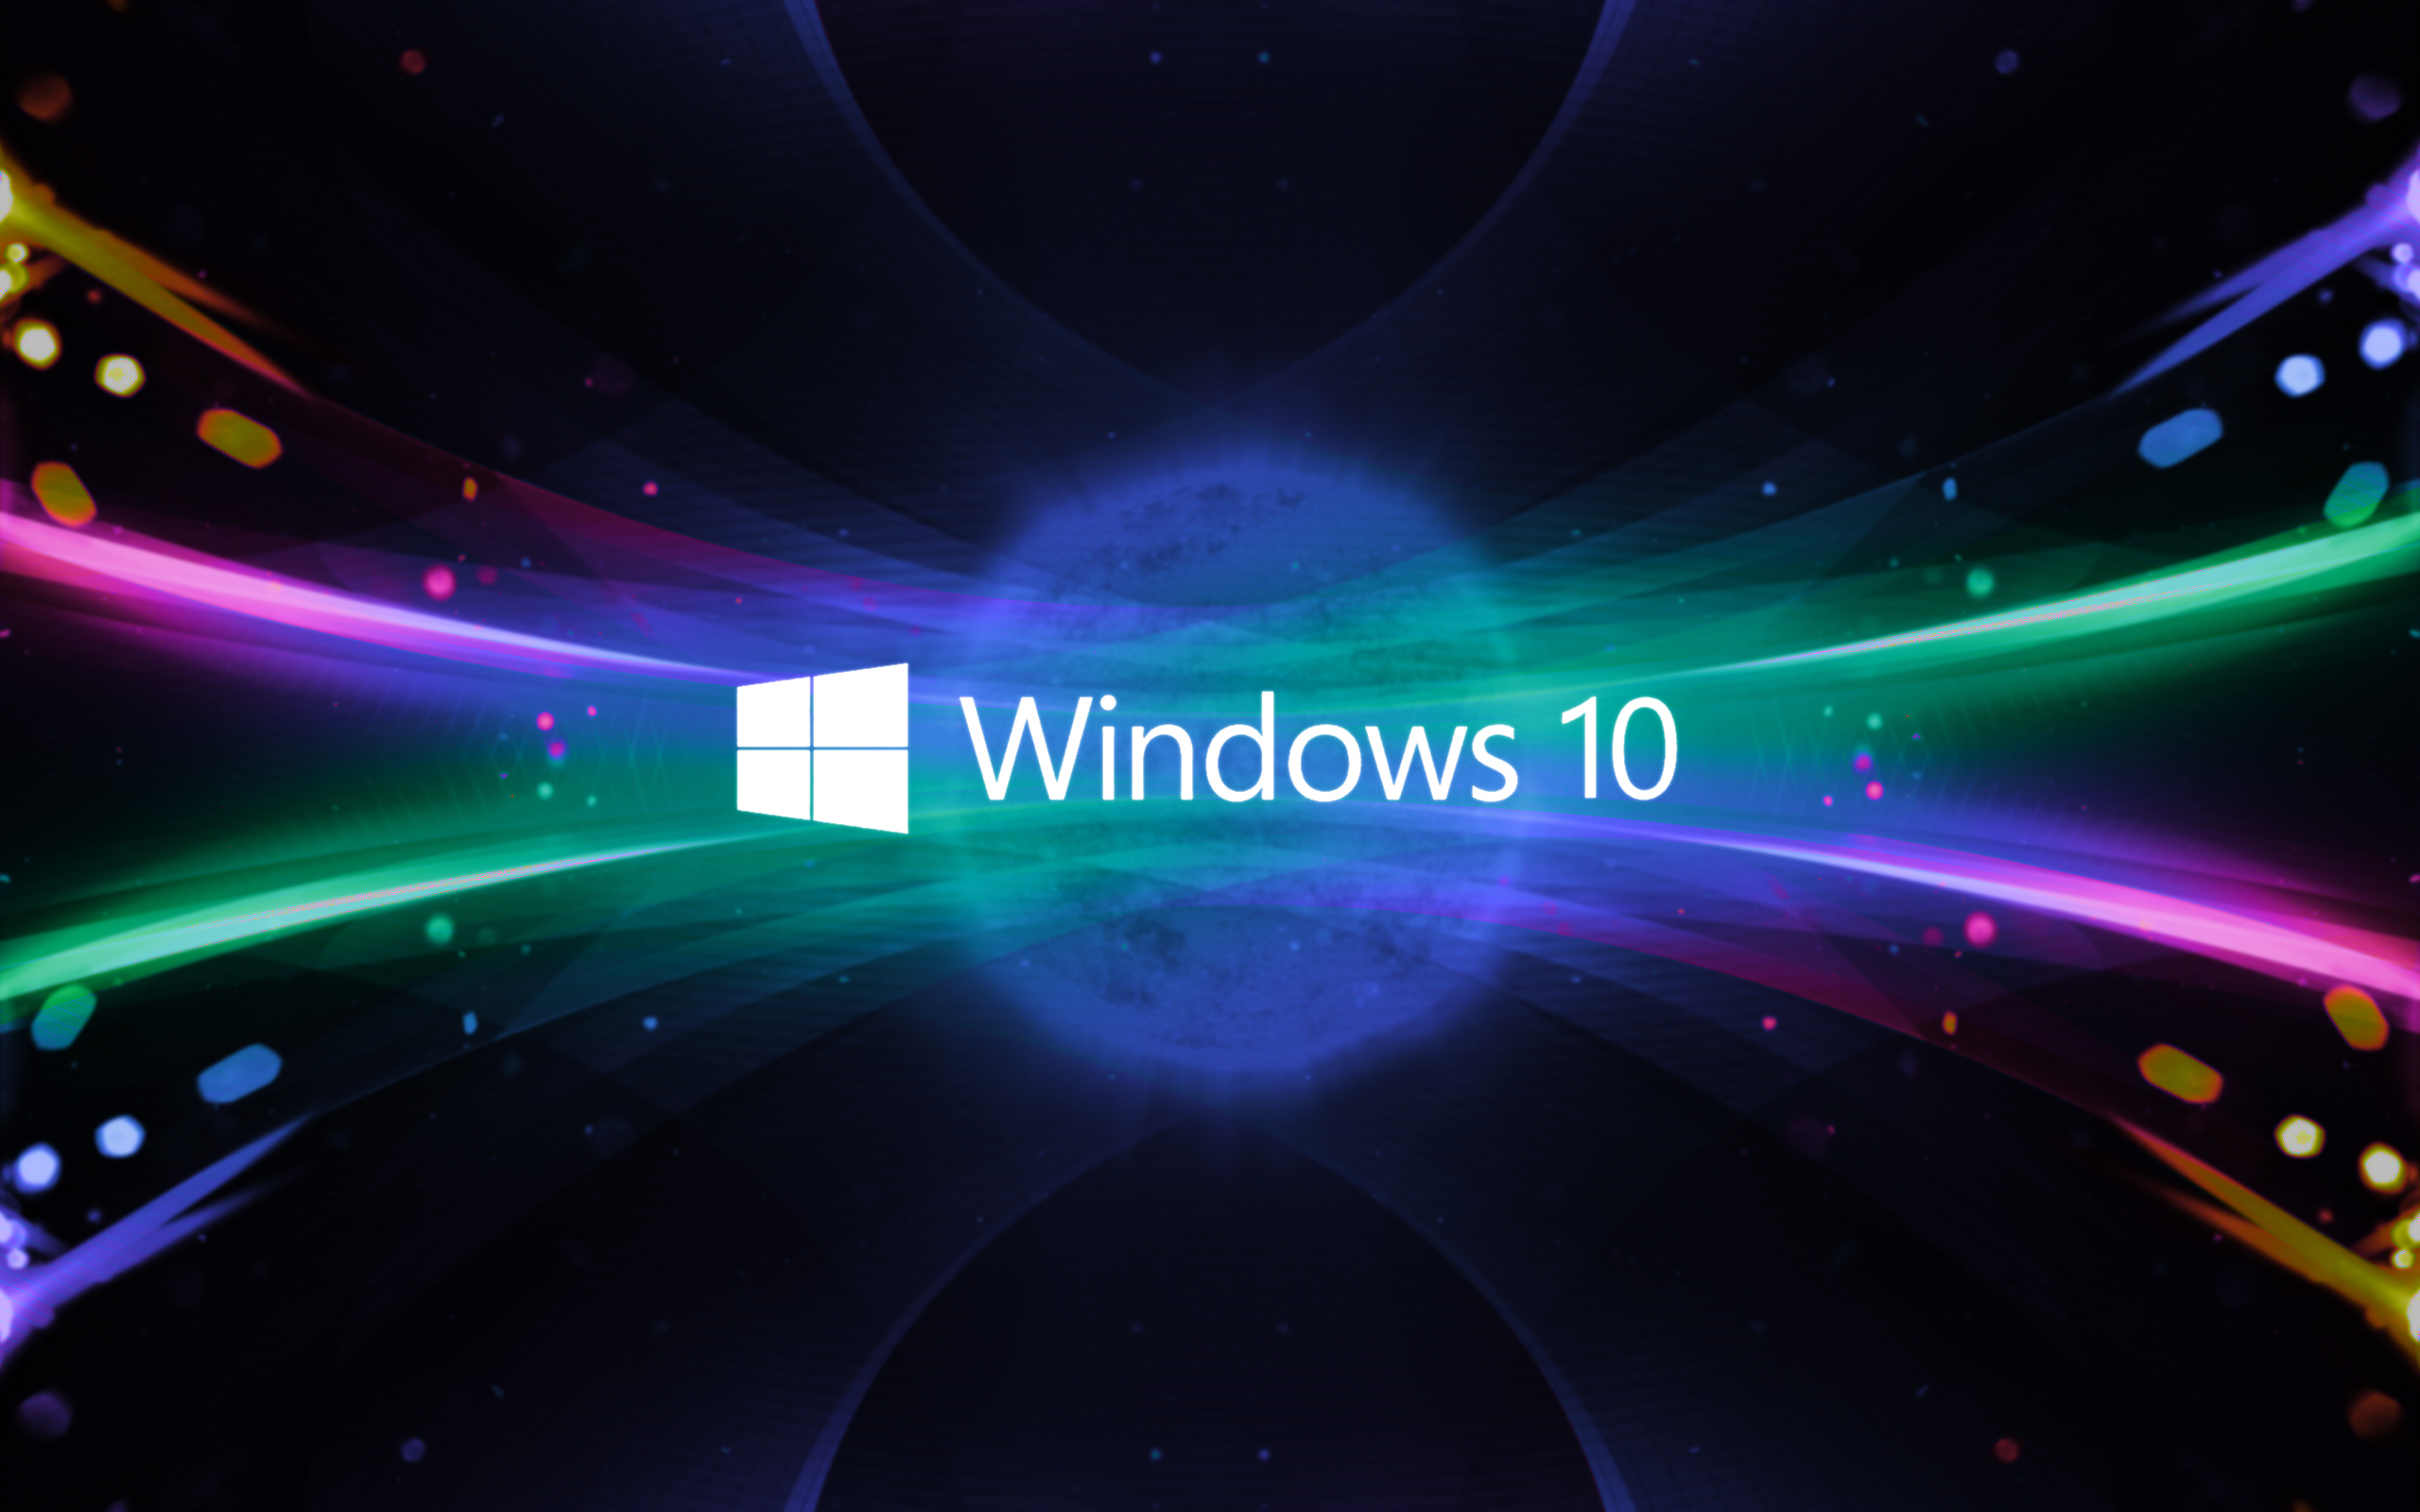 New Windows 10 Wallpaper Desktop 15283 Wallpaper WallpaperLepi 2560x1600